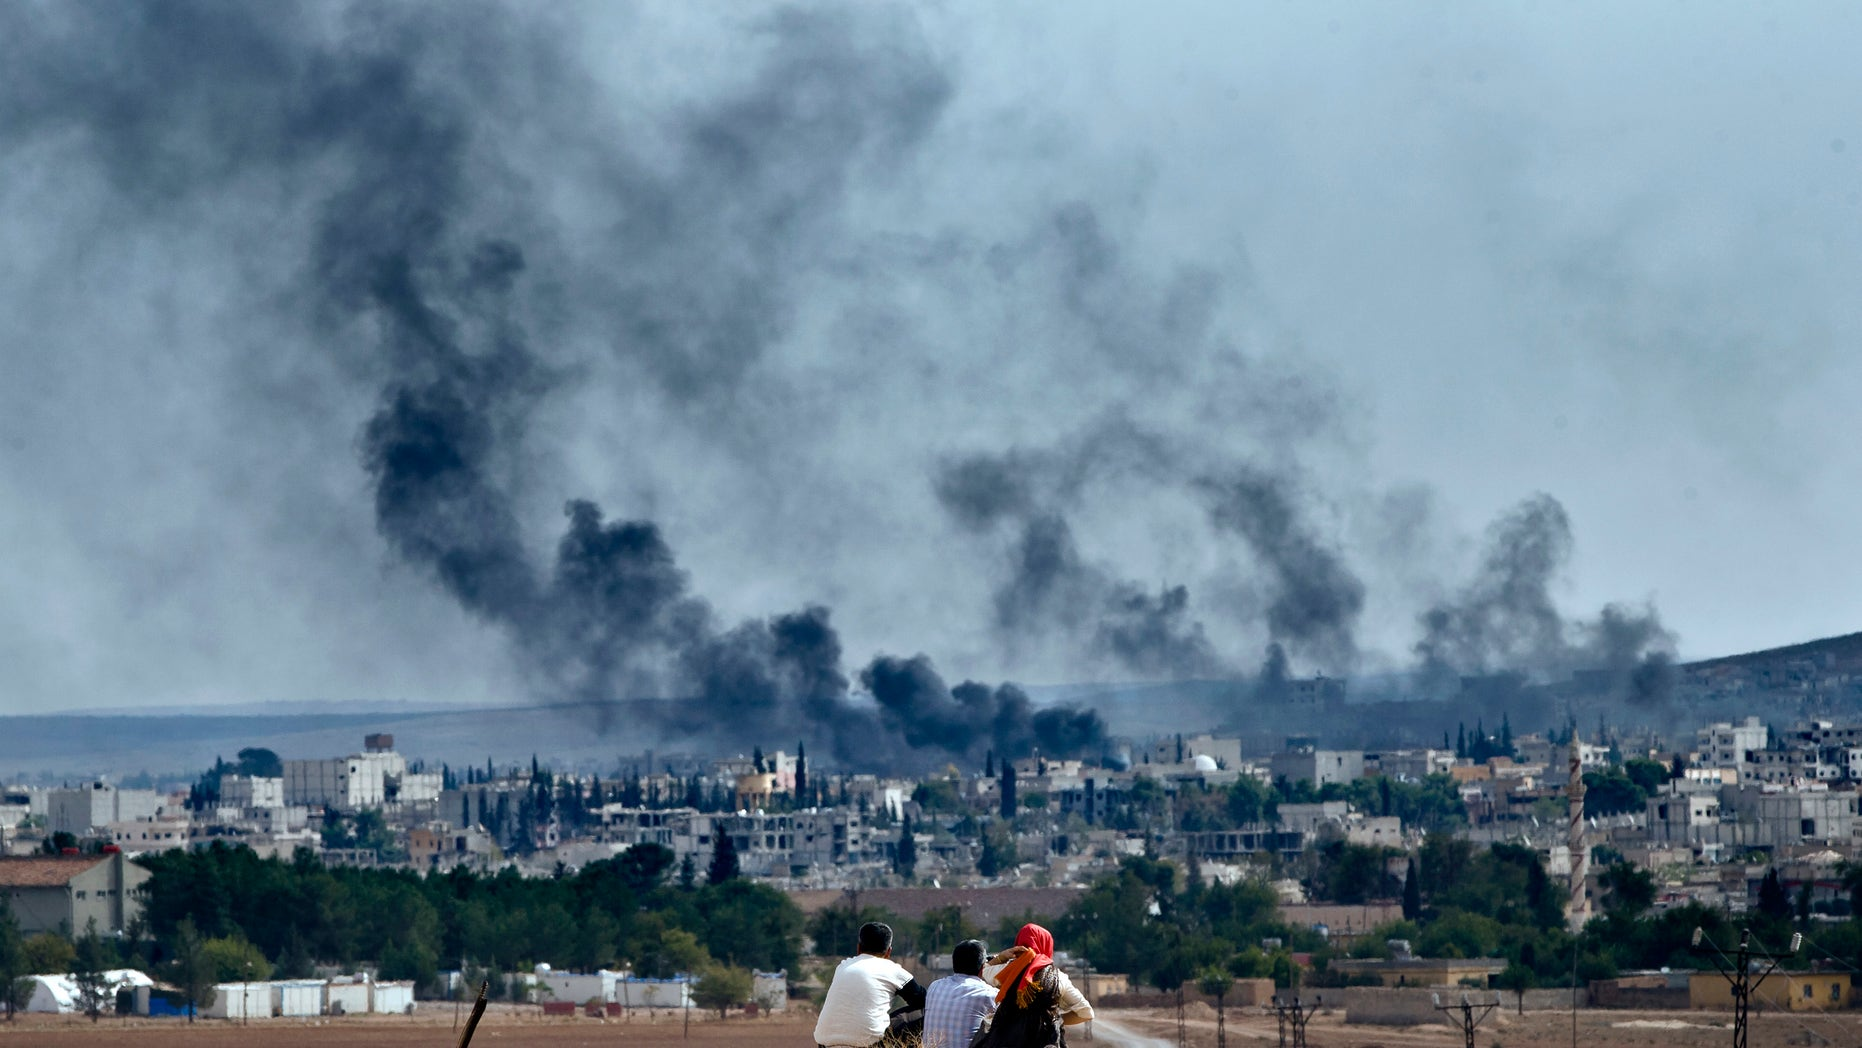 """Oct. 26, 2014 - Syrian Kurdish refugees from Kobani watch fighting across the border in Kobani from the outskirts of Suruc, Turkey, near the Turkey-Syria border. A new UN report says the world is facing a challenge of foreign fighters in terror groups on an """"unprecedented scale,"""" with about 15,000 in Syria and Iraq alone."""